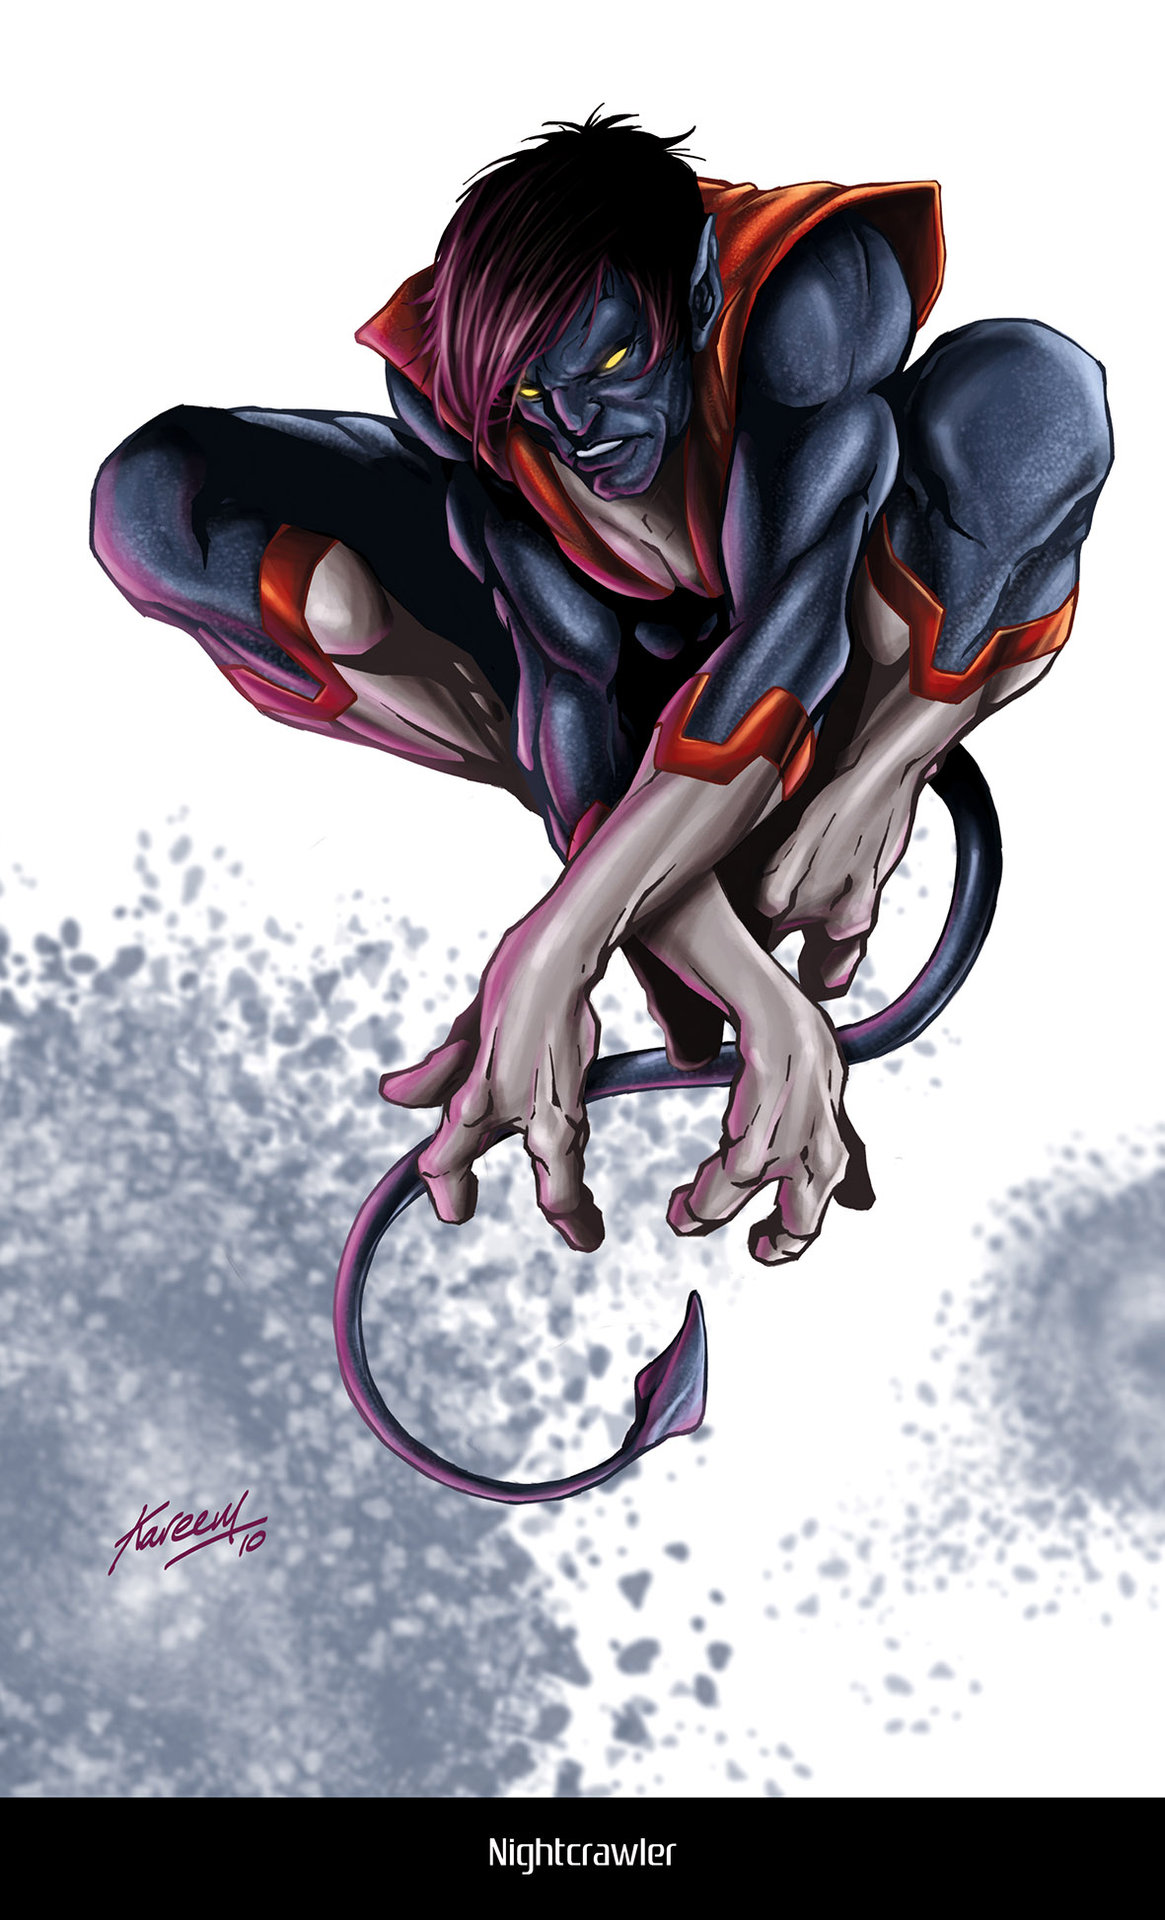 Kareem ahmed nightcrawler low